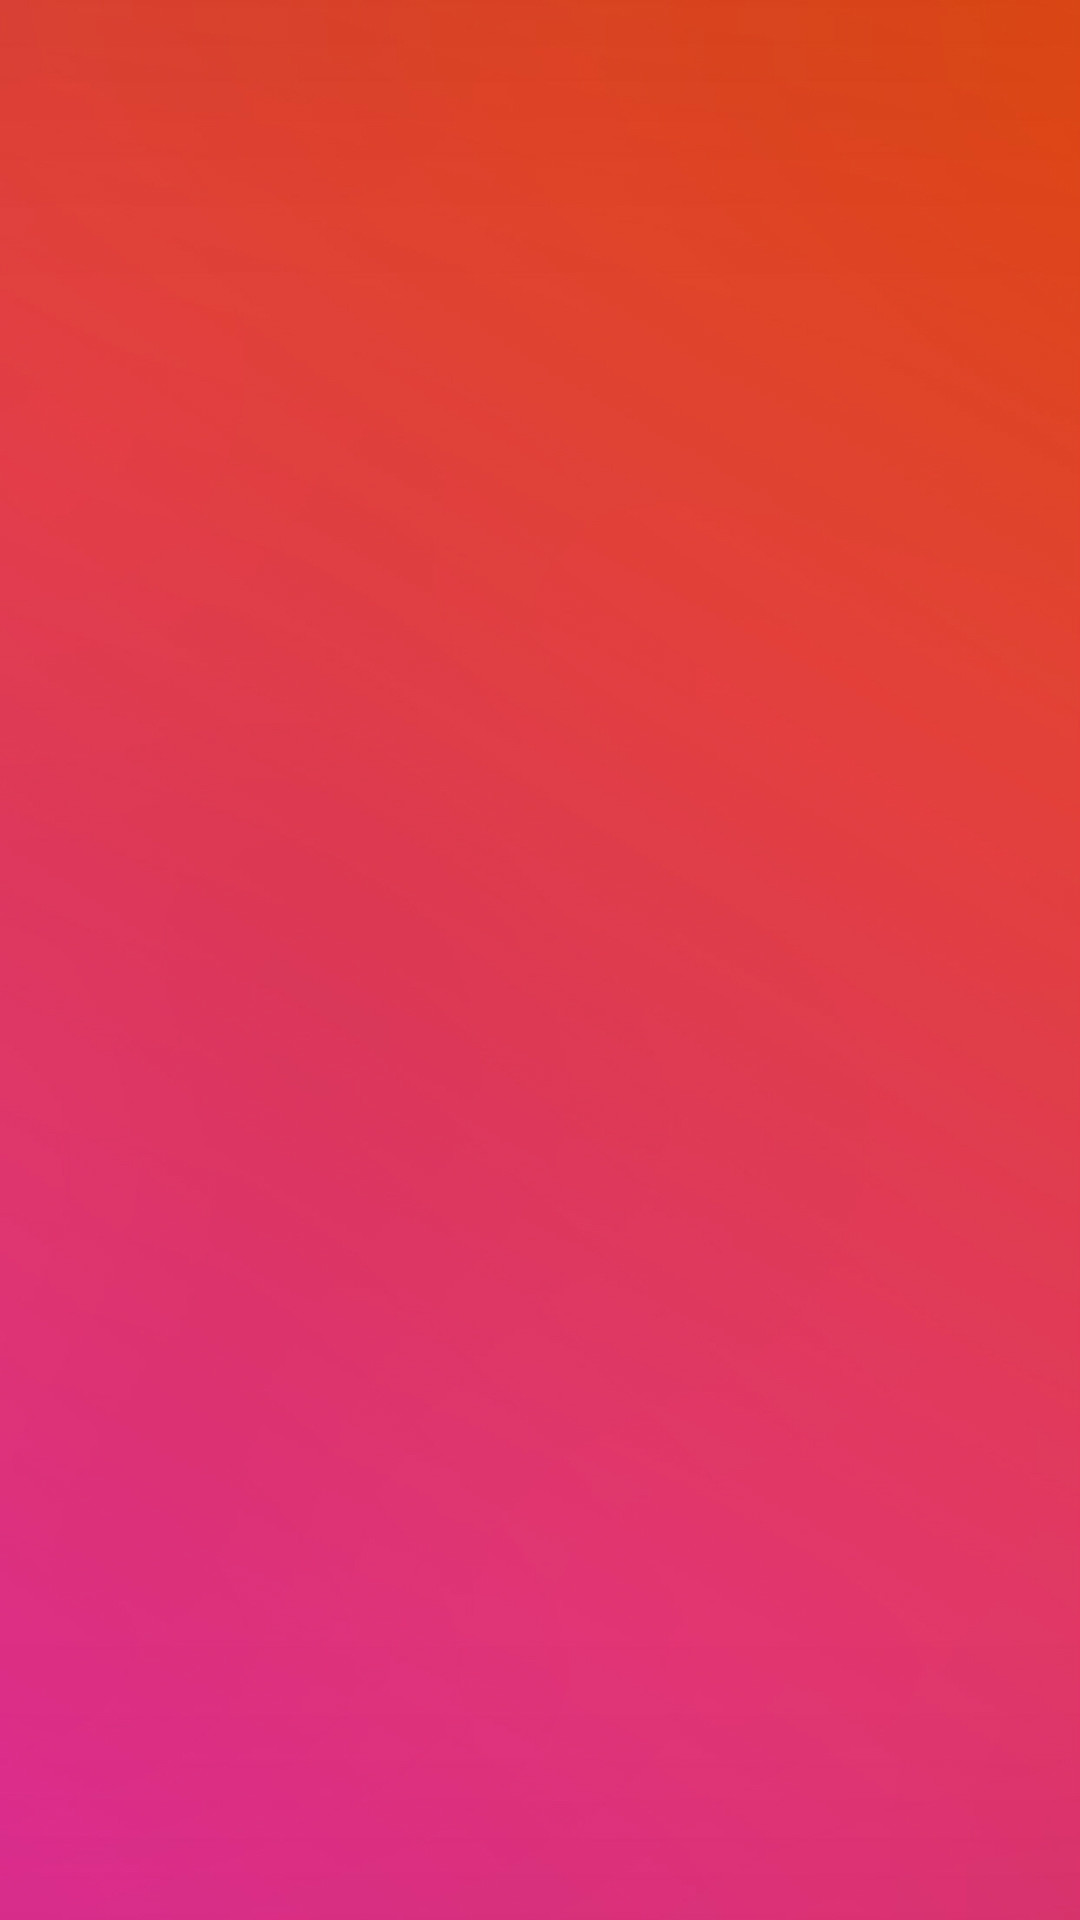 1080x1920 Red Orange Combination Inside Gradation Blur iPhone 6 wallpaper